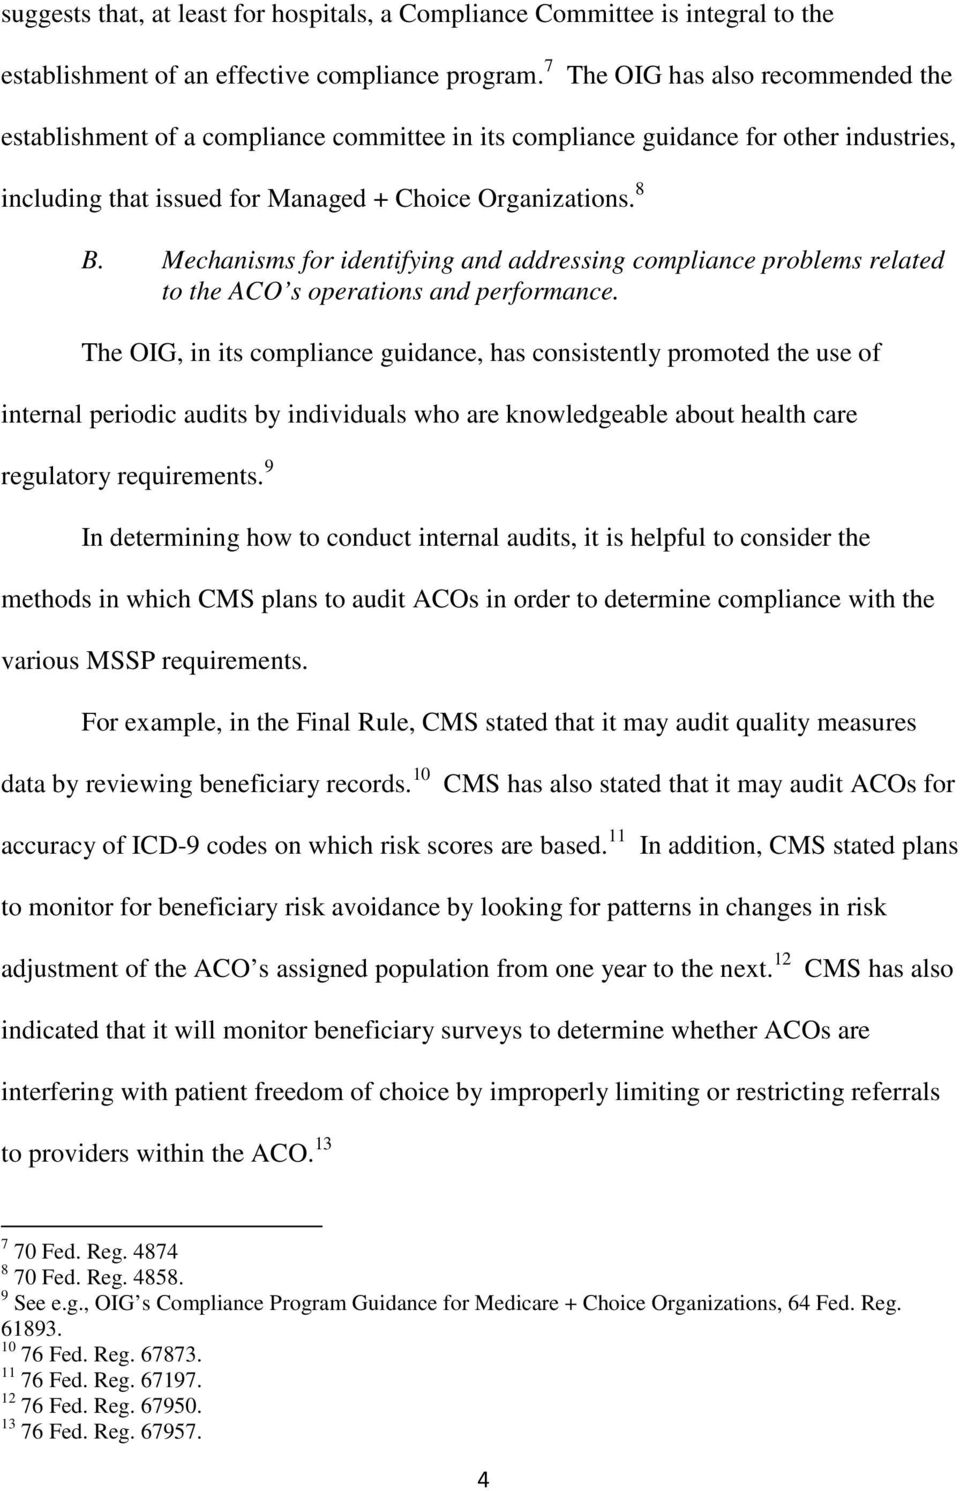 Mechanisms for identifying and addressing compliance problems related to the ACO s operations and performance.